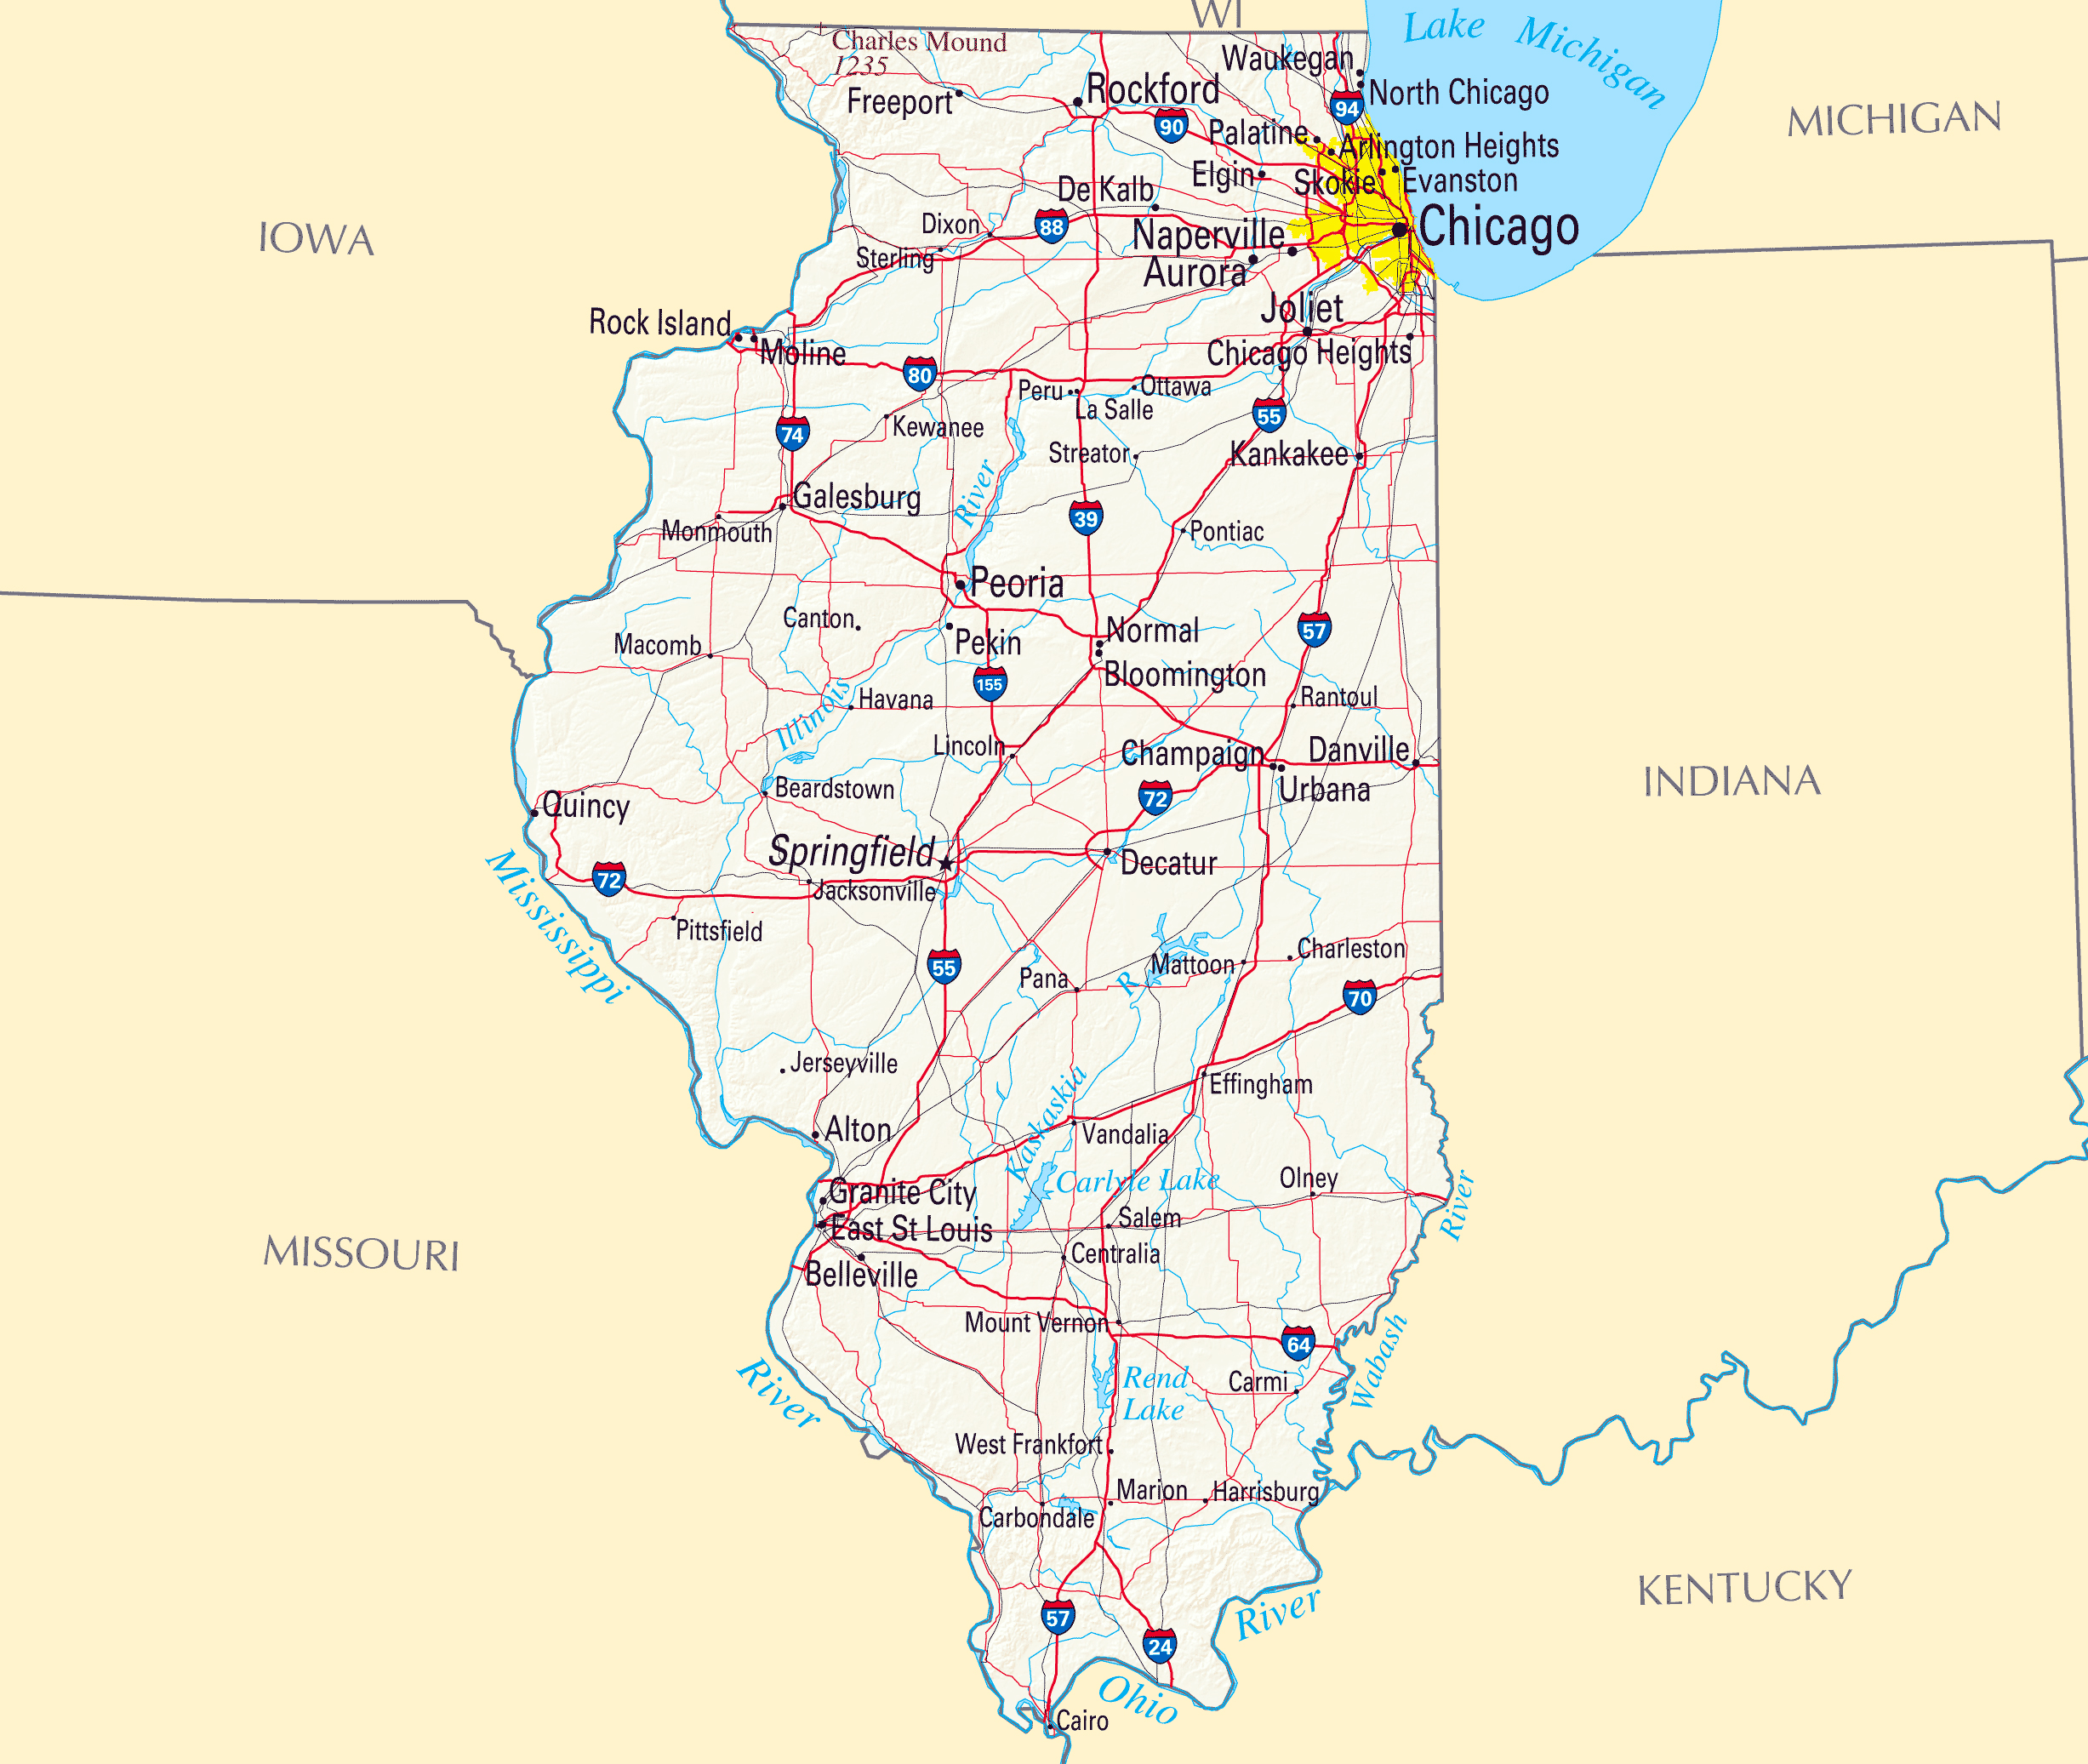 Large Map Of Illinois State With Roads Highways Relief